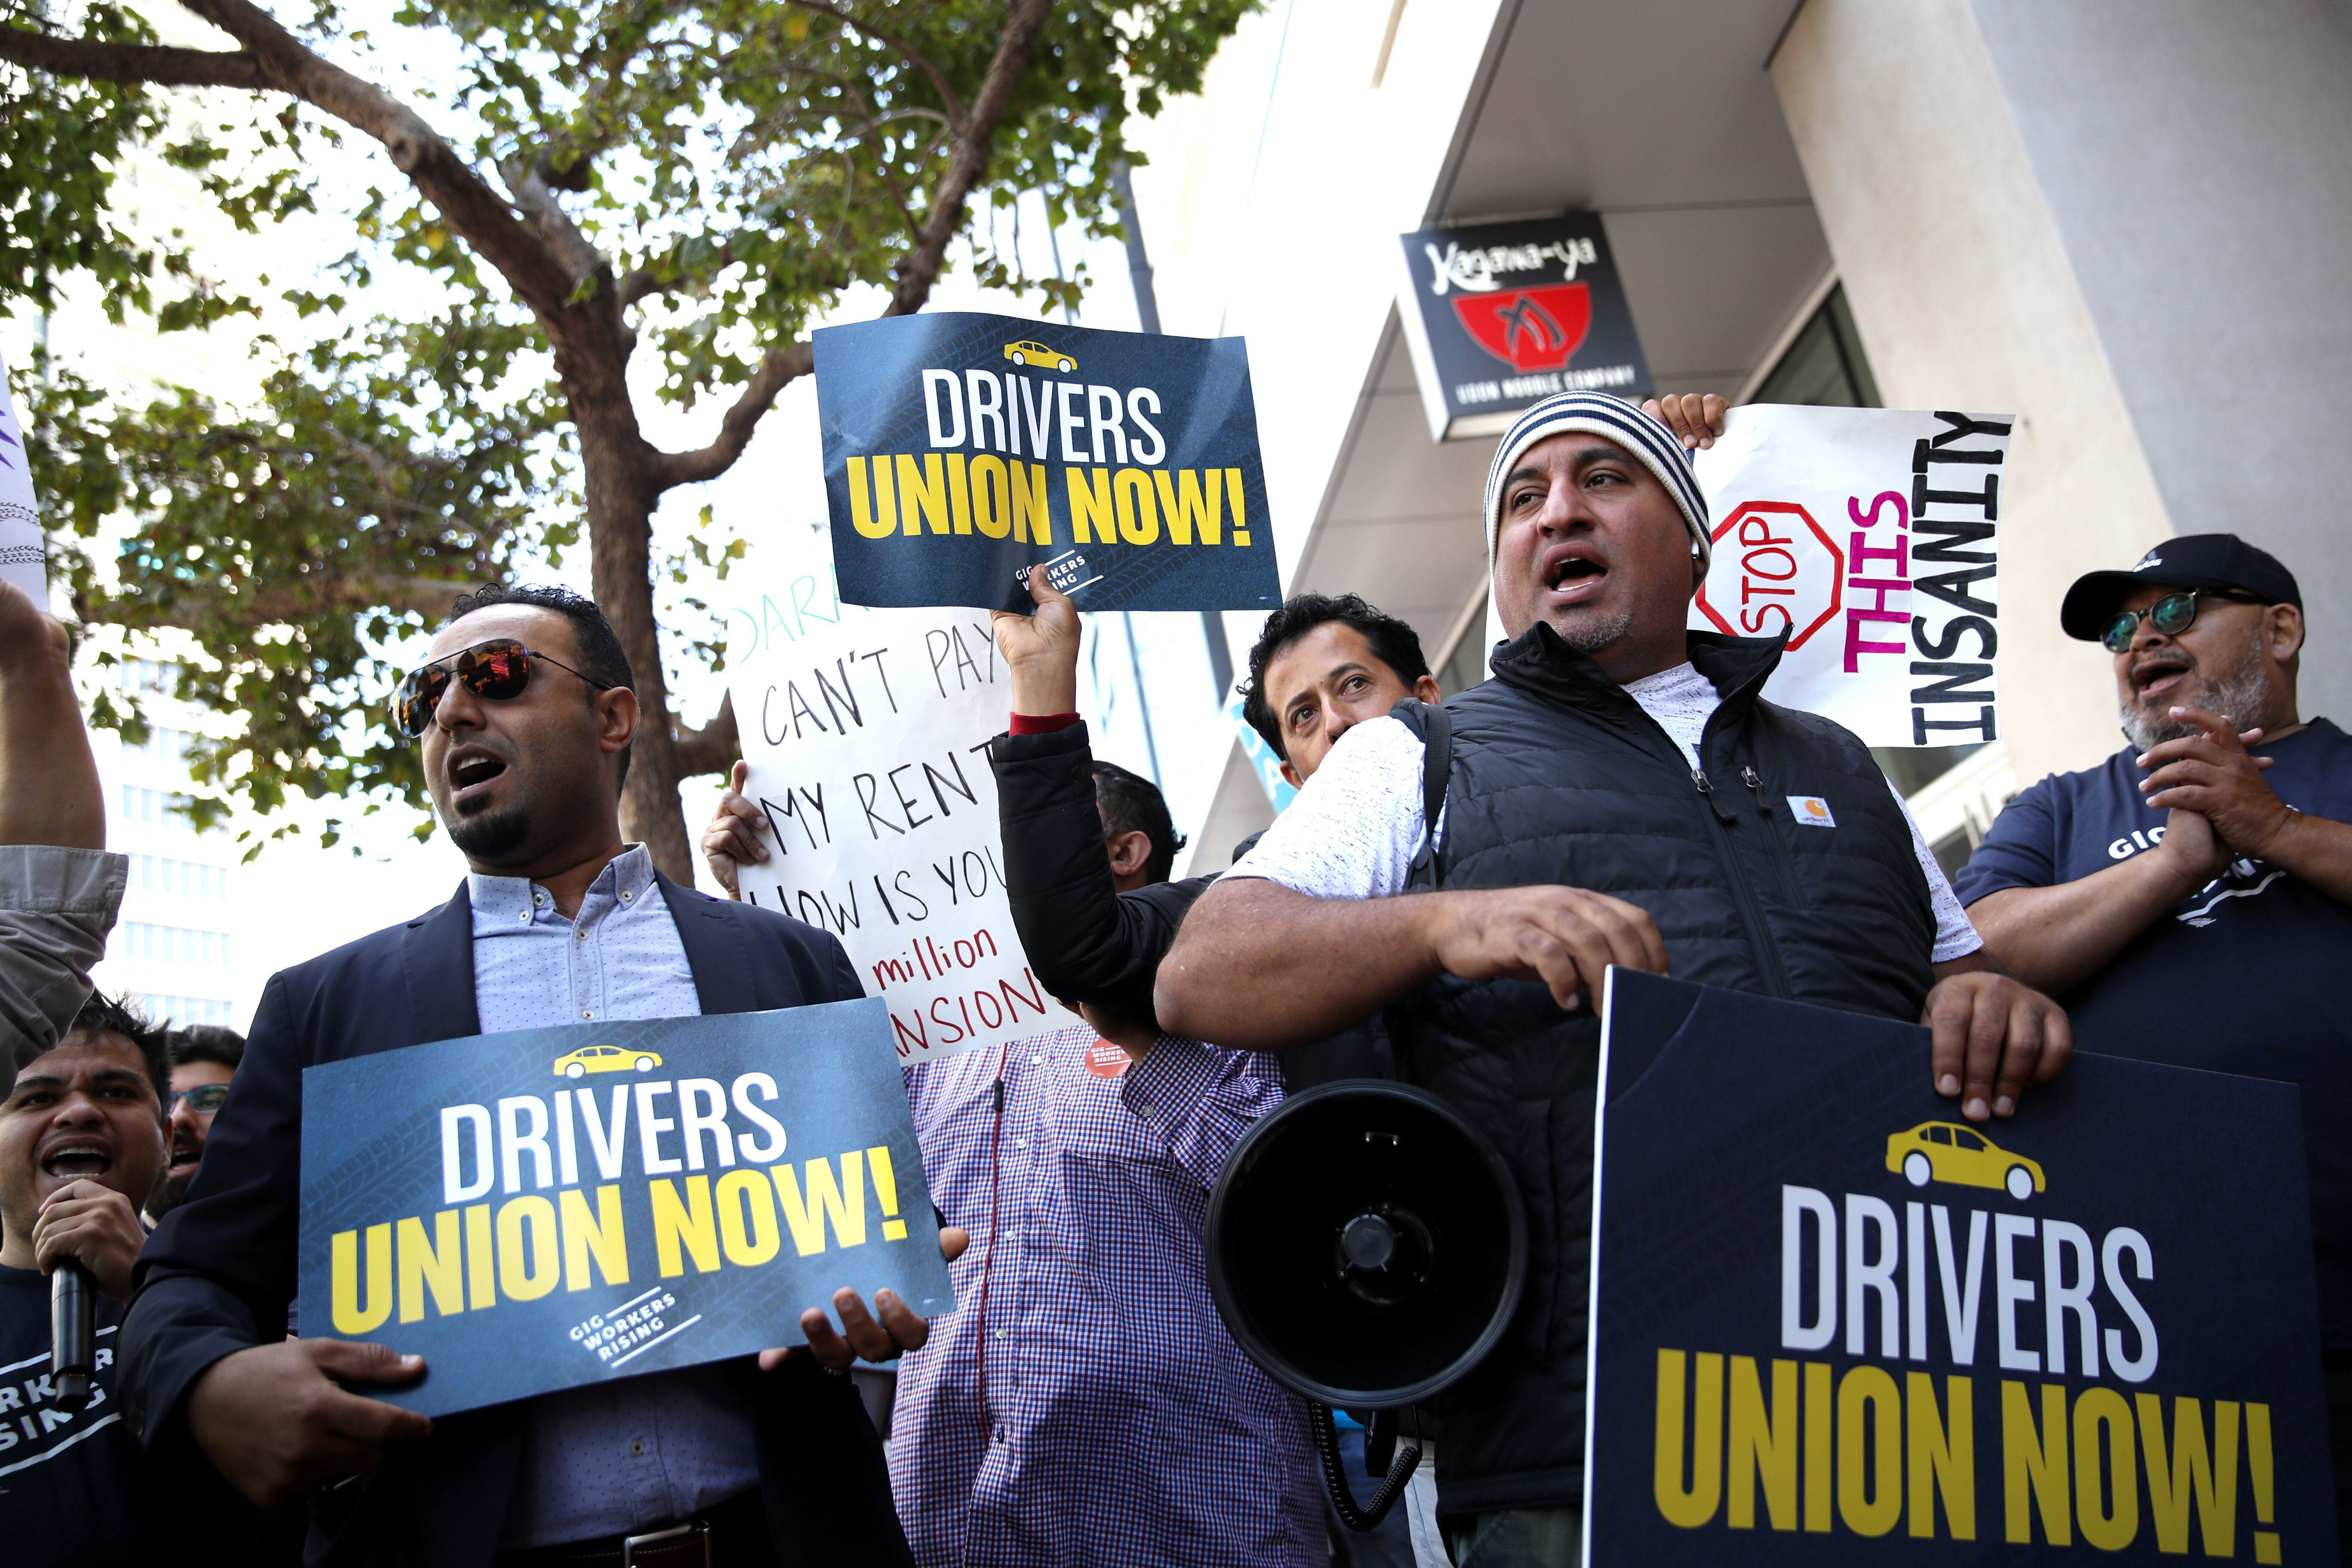 Rideshare drivers hold signs during a protest outside Uber headquarters in San Francisco in support of California labor legis